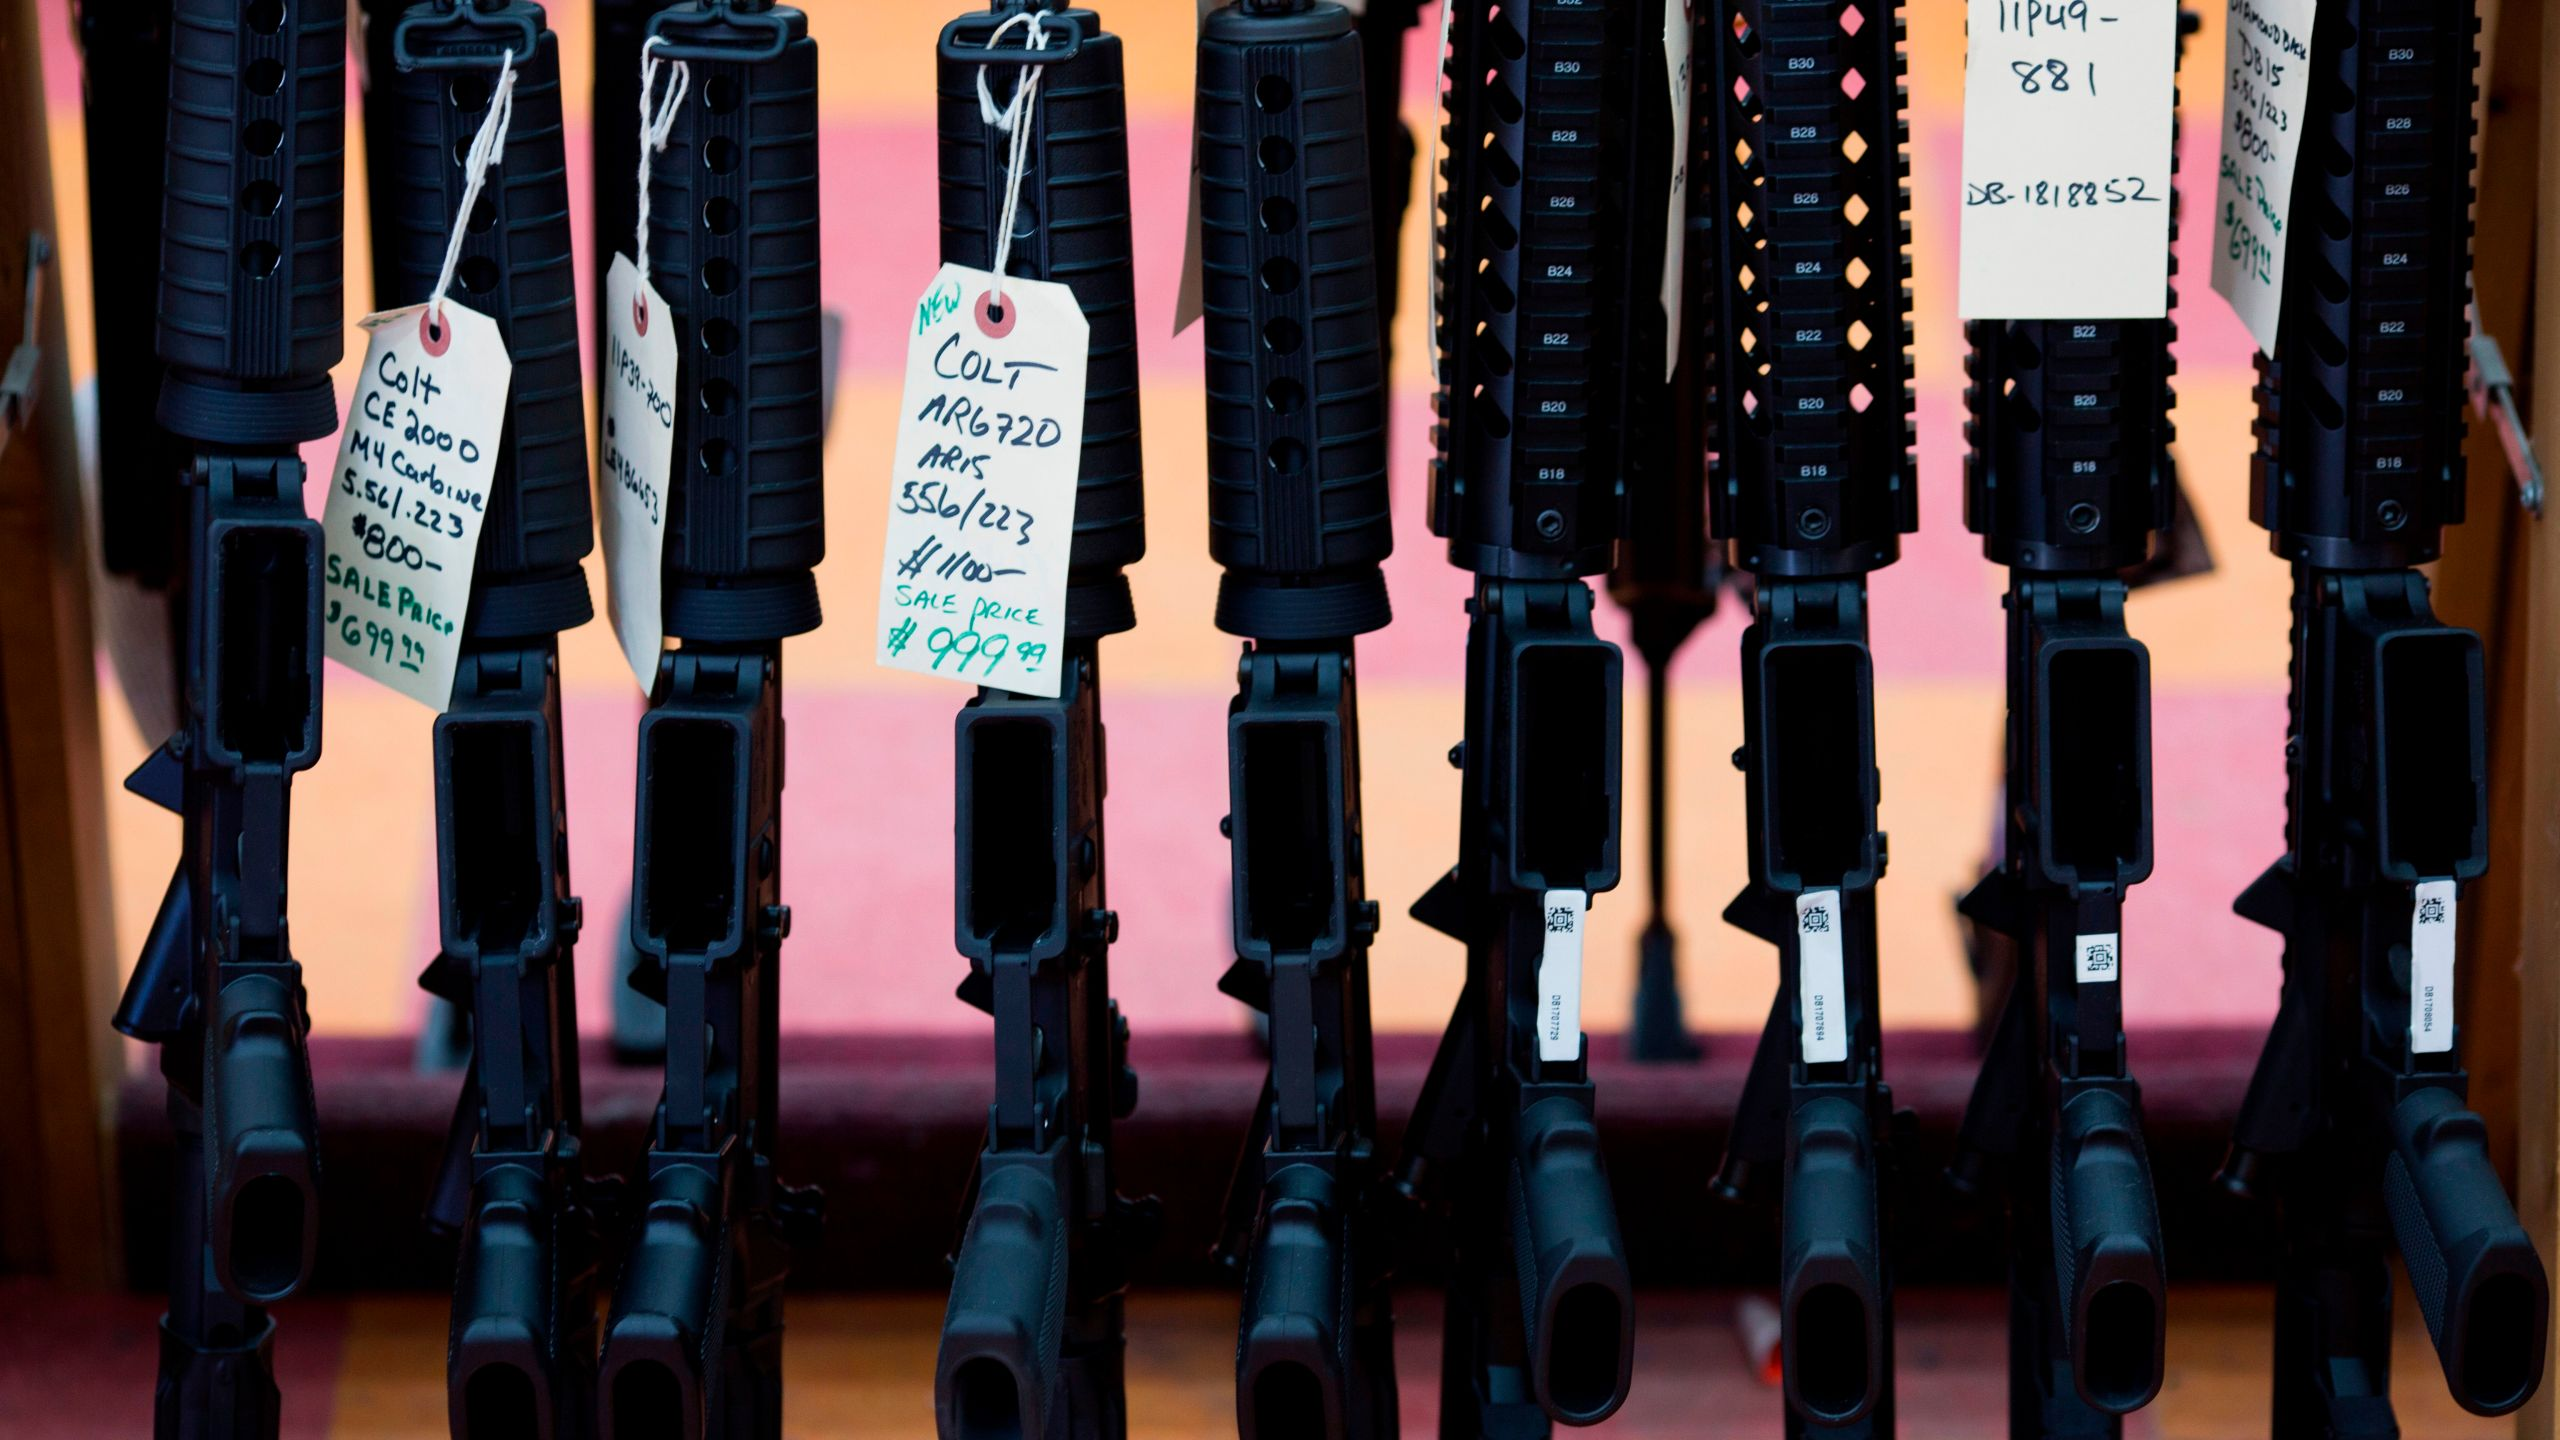 Rifles are for sale at a gun shop in Merrimack, New Hampshire, in this Nov. 5, 2016, file photo. (Credit: DOMINICK REUTER/AFP/Getty Images)